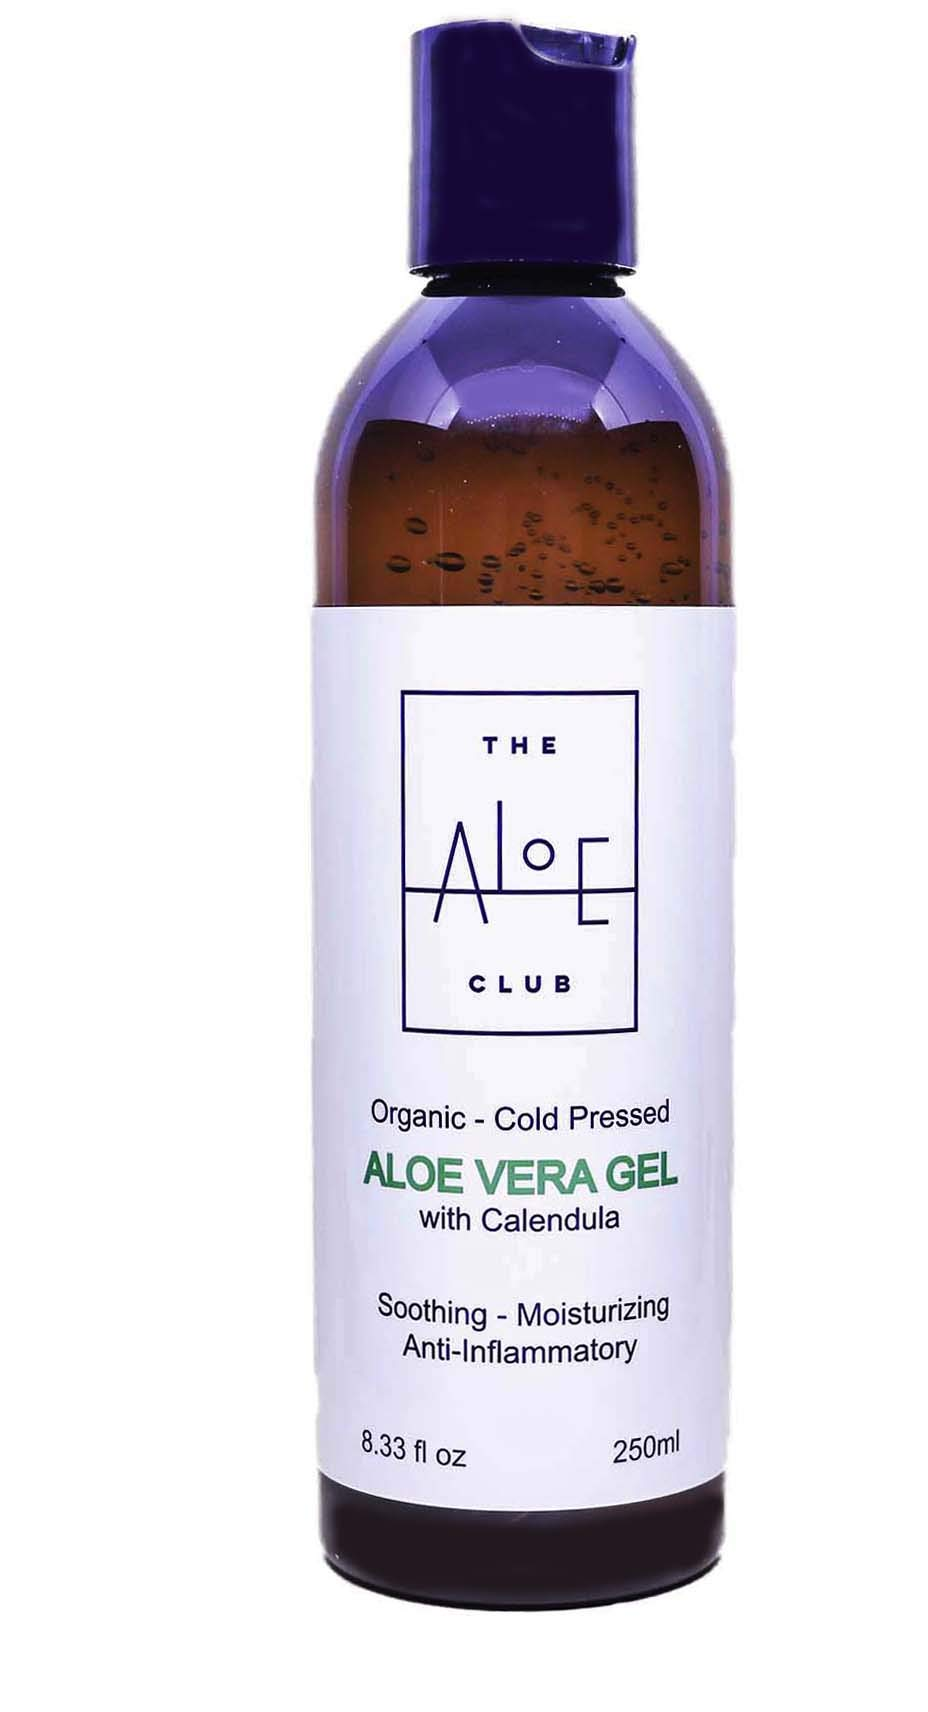 The Aloe Club Organic Aloe Vera from FRESH ORGANIC Aloes, not powder - NO POTASIUM SORBATE irritant, with Organic Calendula so it soothes and reduces redness, and has natural floral aroma